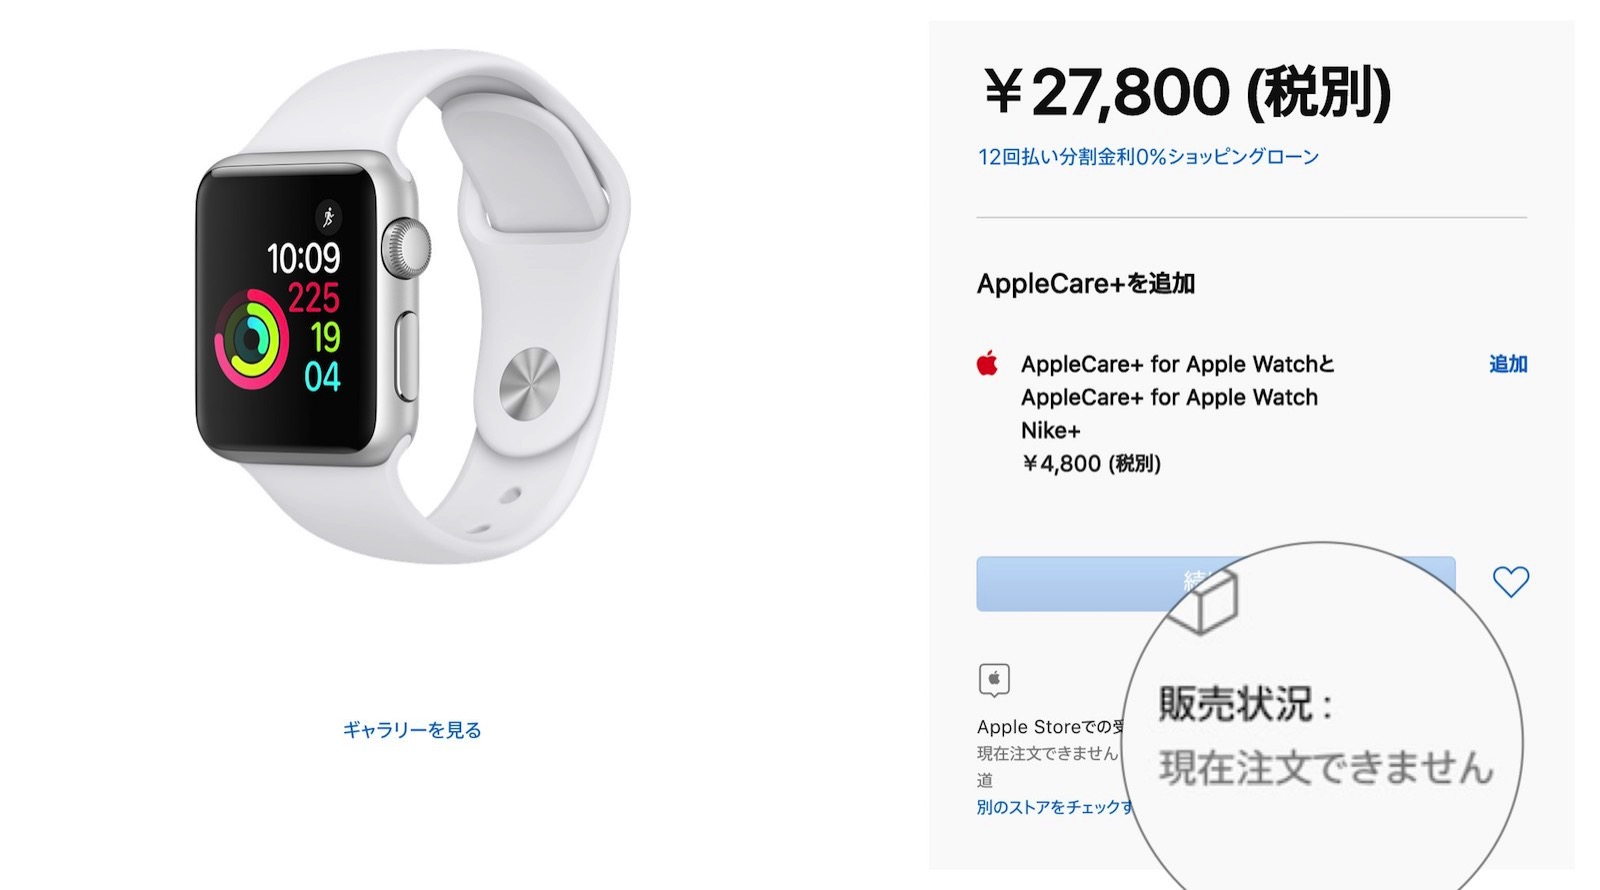 Apple Series 1 sold out